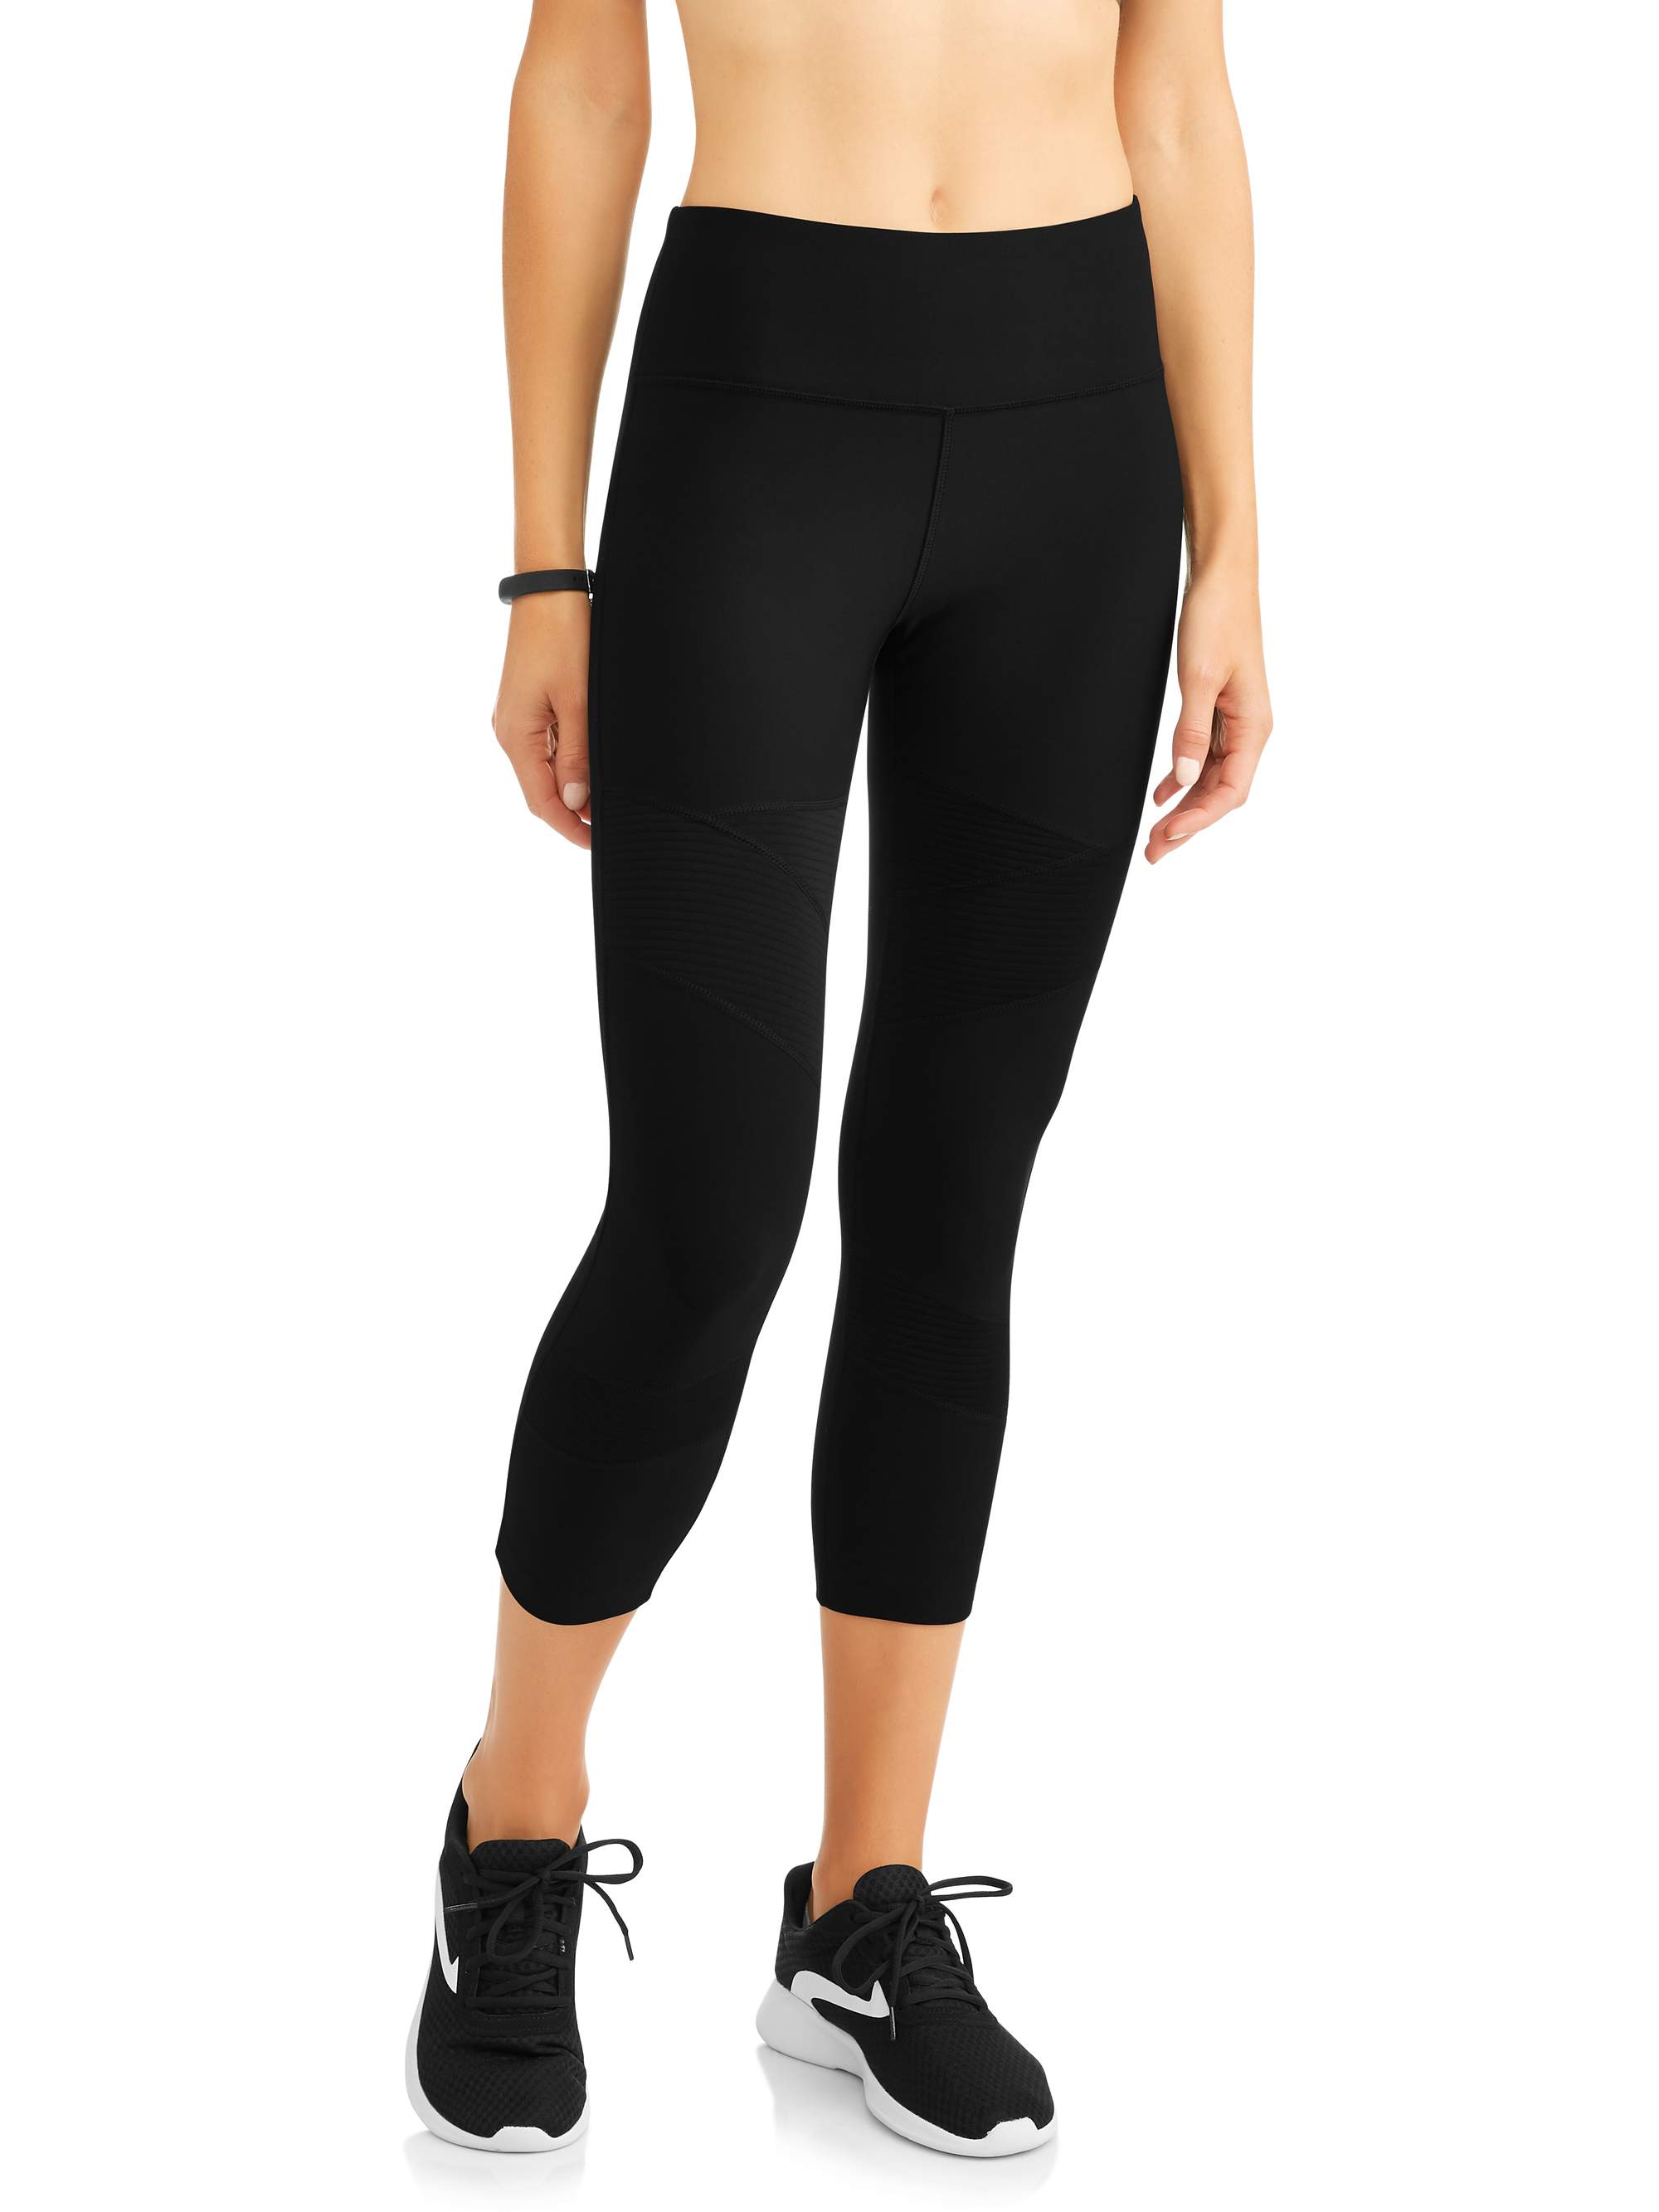 f317aa6c1264b Avia Women's Active Mesh Insert Performance Capri Leggings – Walmart ...